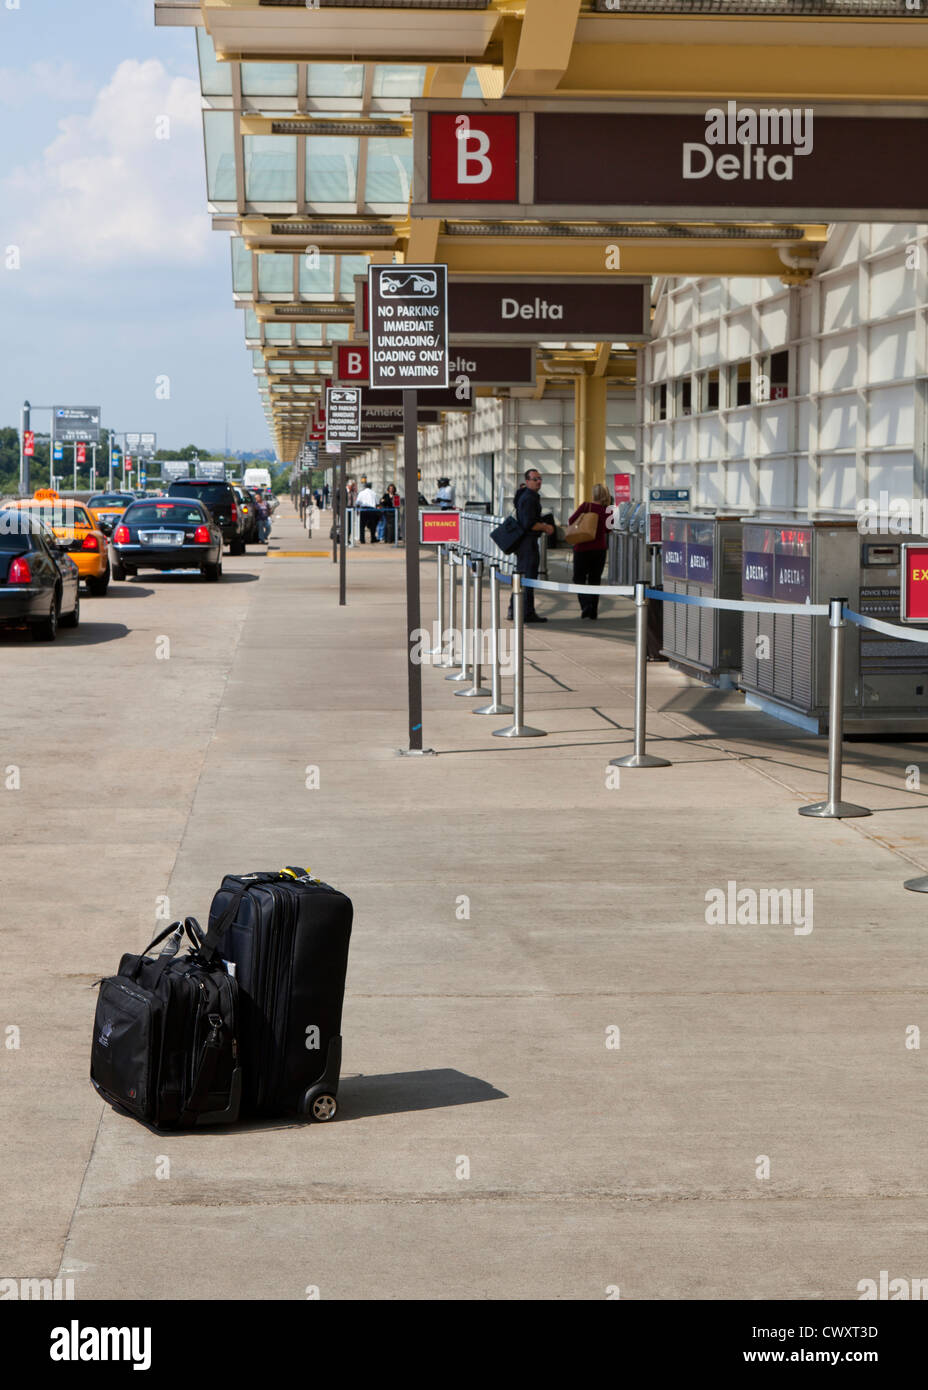 Unattended luggage at airport - Stock Image